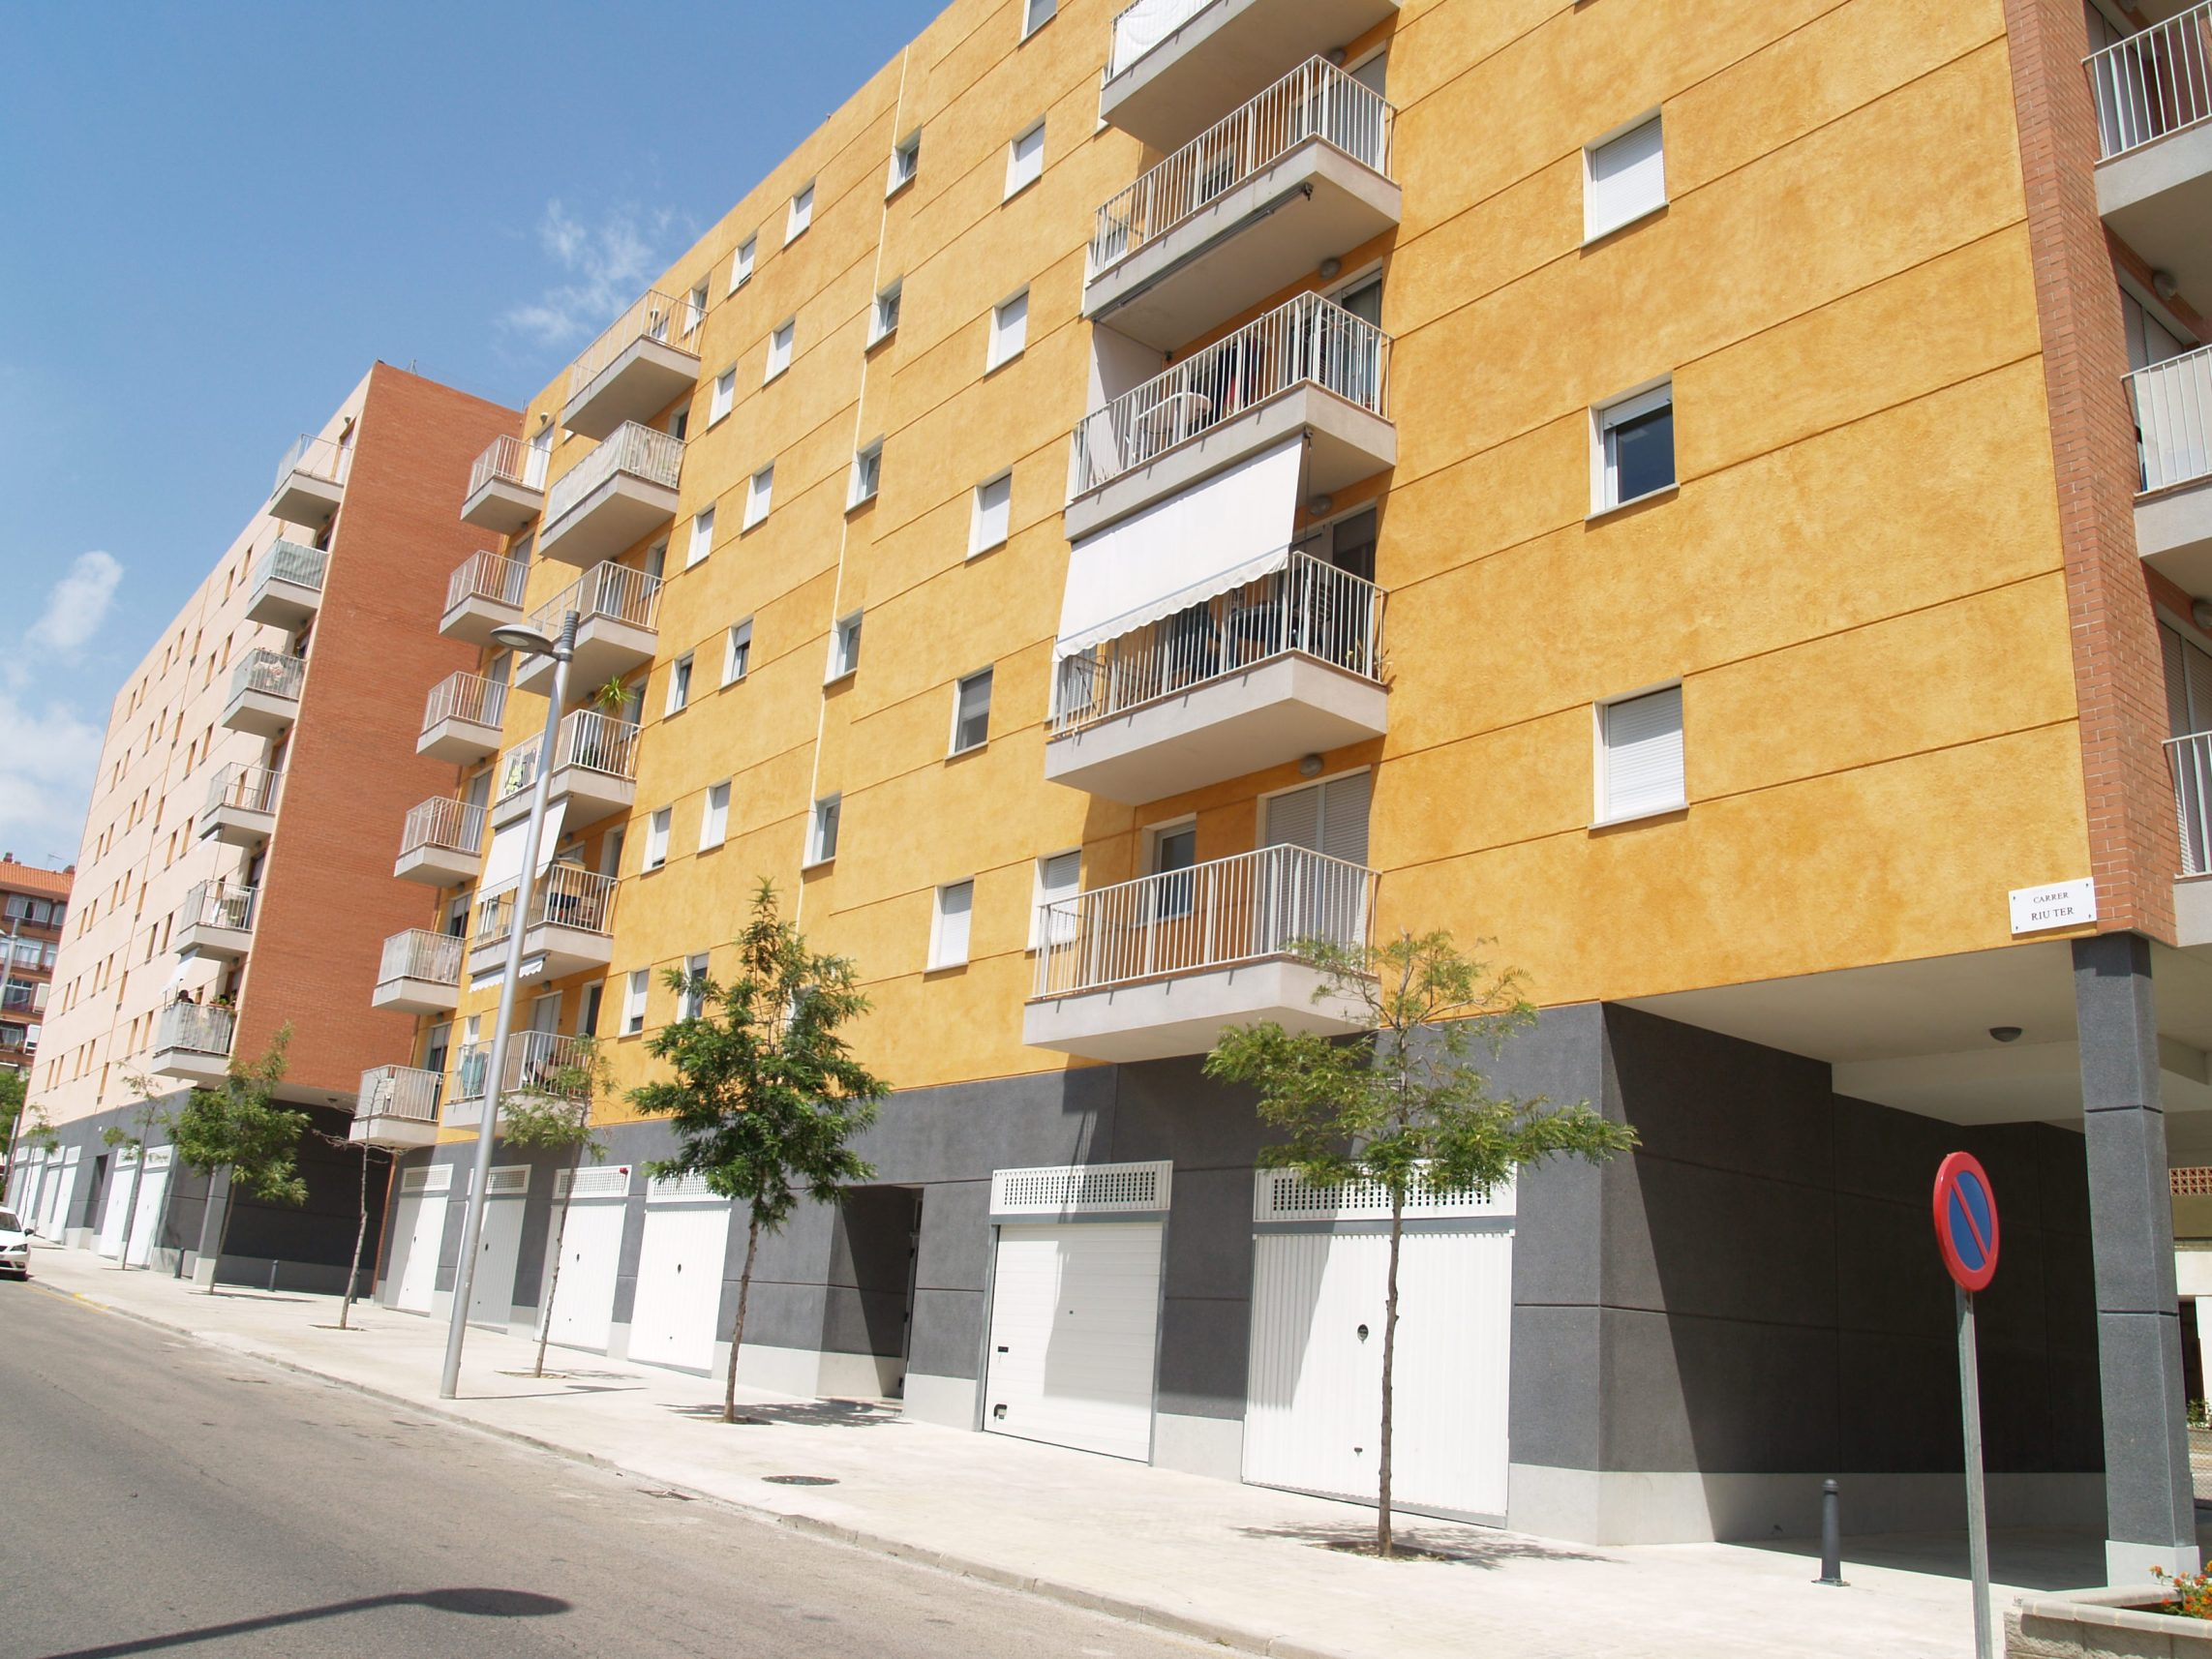 Anida idealista news for Oferta inmobiliaria bbva